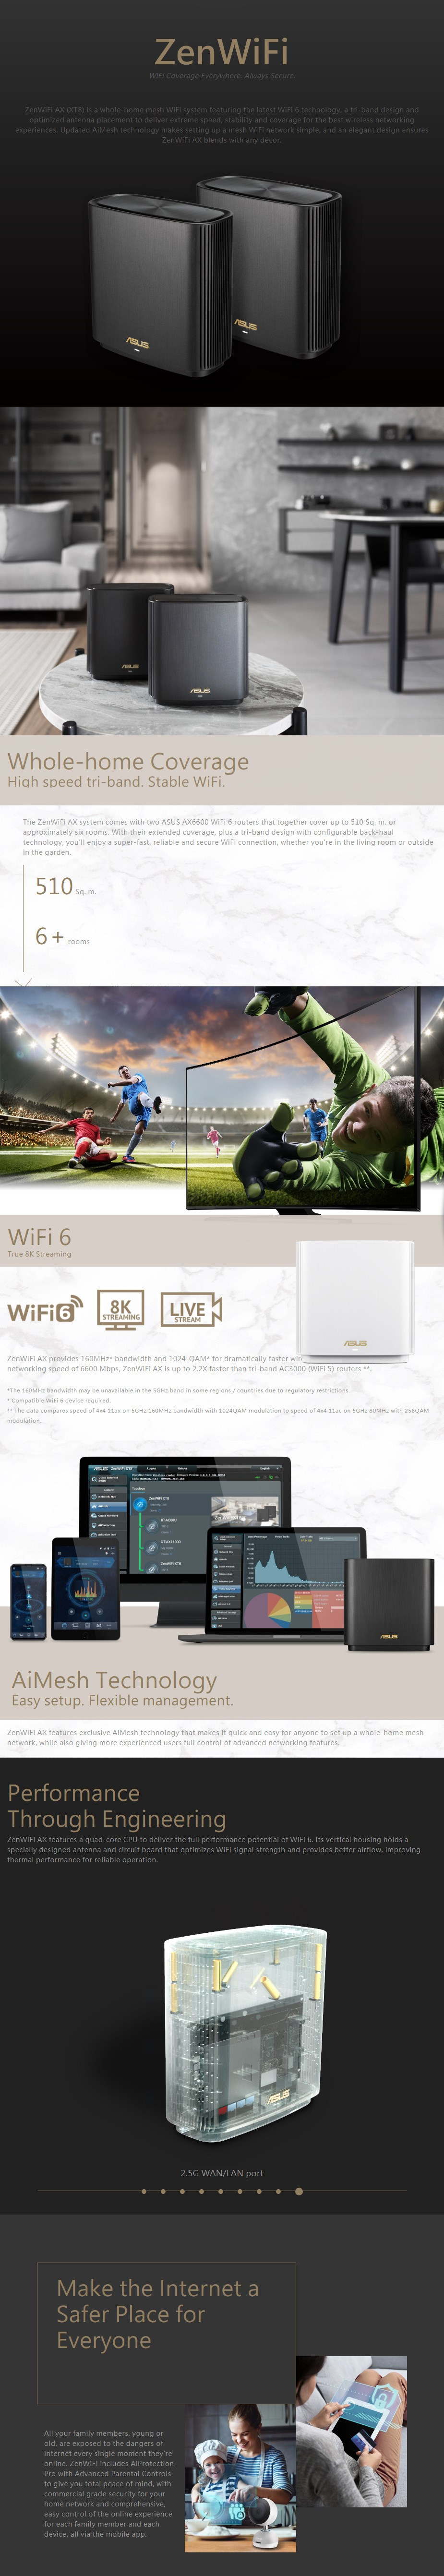 ASUS XT8 AX6600 ZenWiFi Tri Band Mesh WiFi Gigabit System - 2 Pack - Overview 1